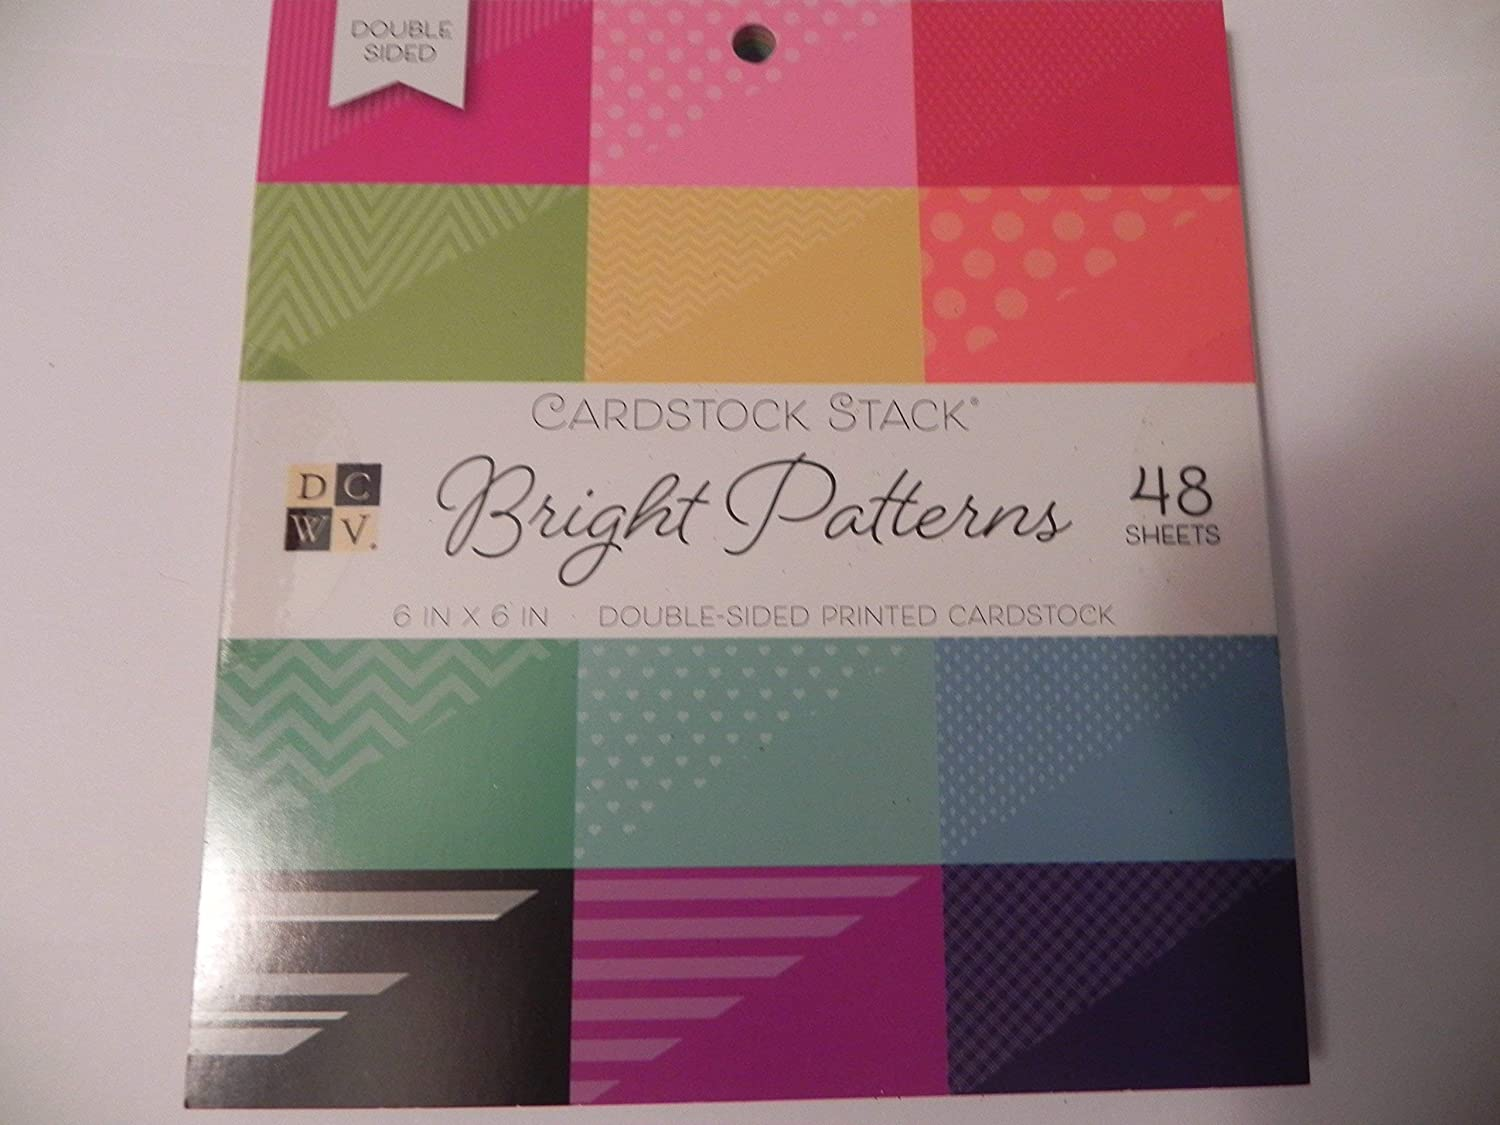 """American Crafts DCWV 6"""" x 6"""" Premium Mat Stacks Bright Patterns (Double Sided) - 48 Sheets - Acid-Free Cardstock"""